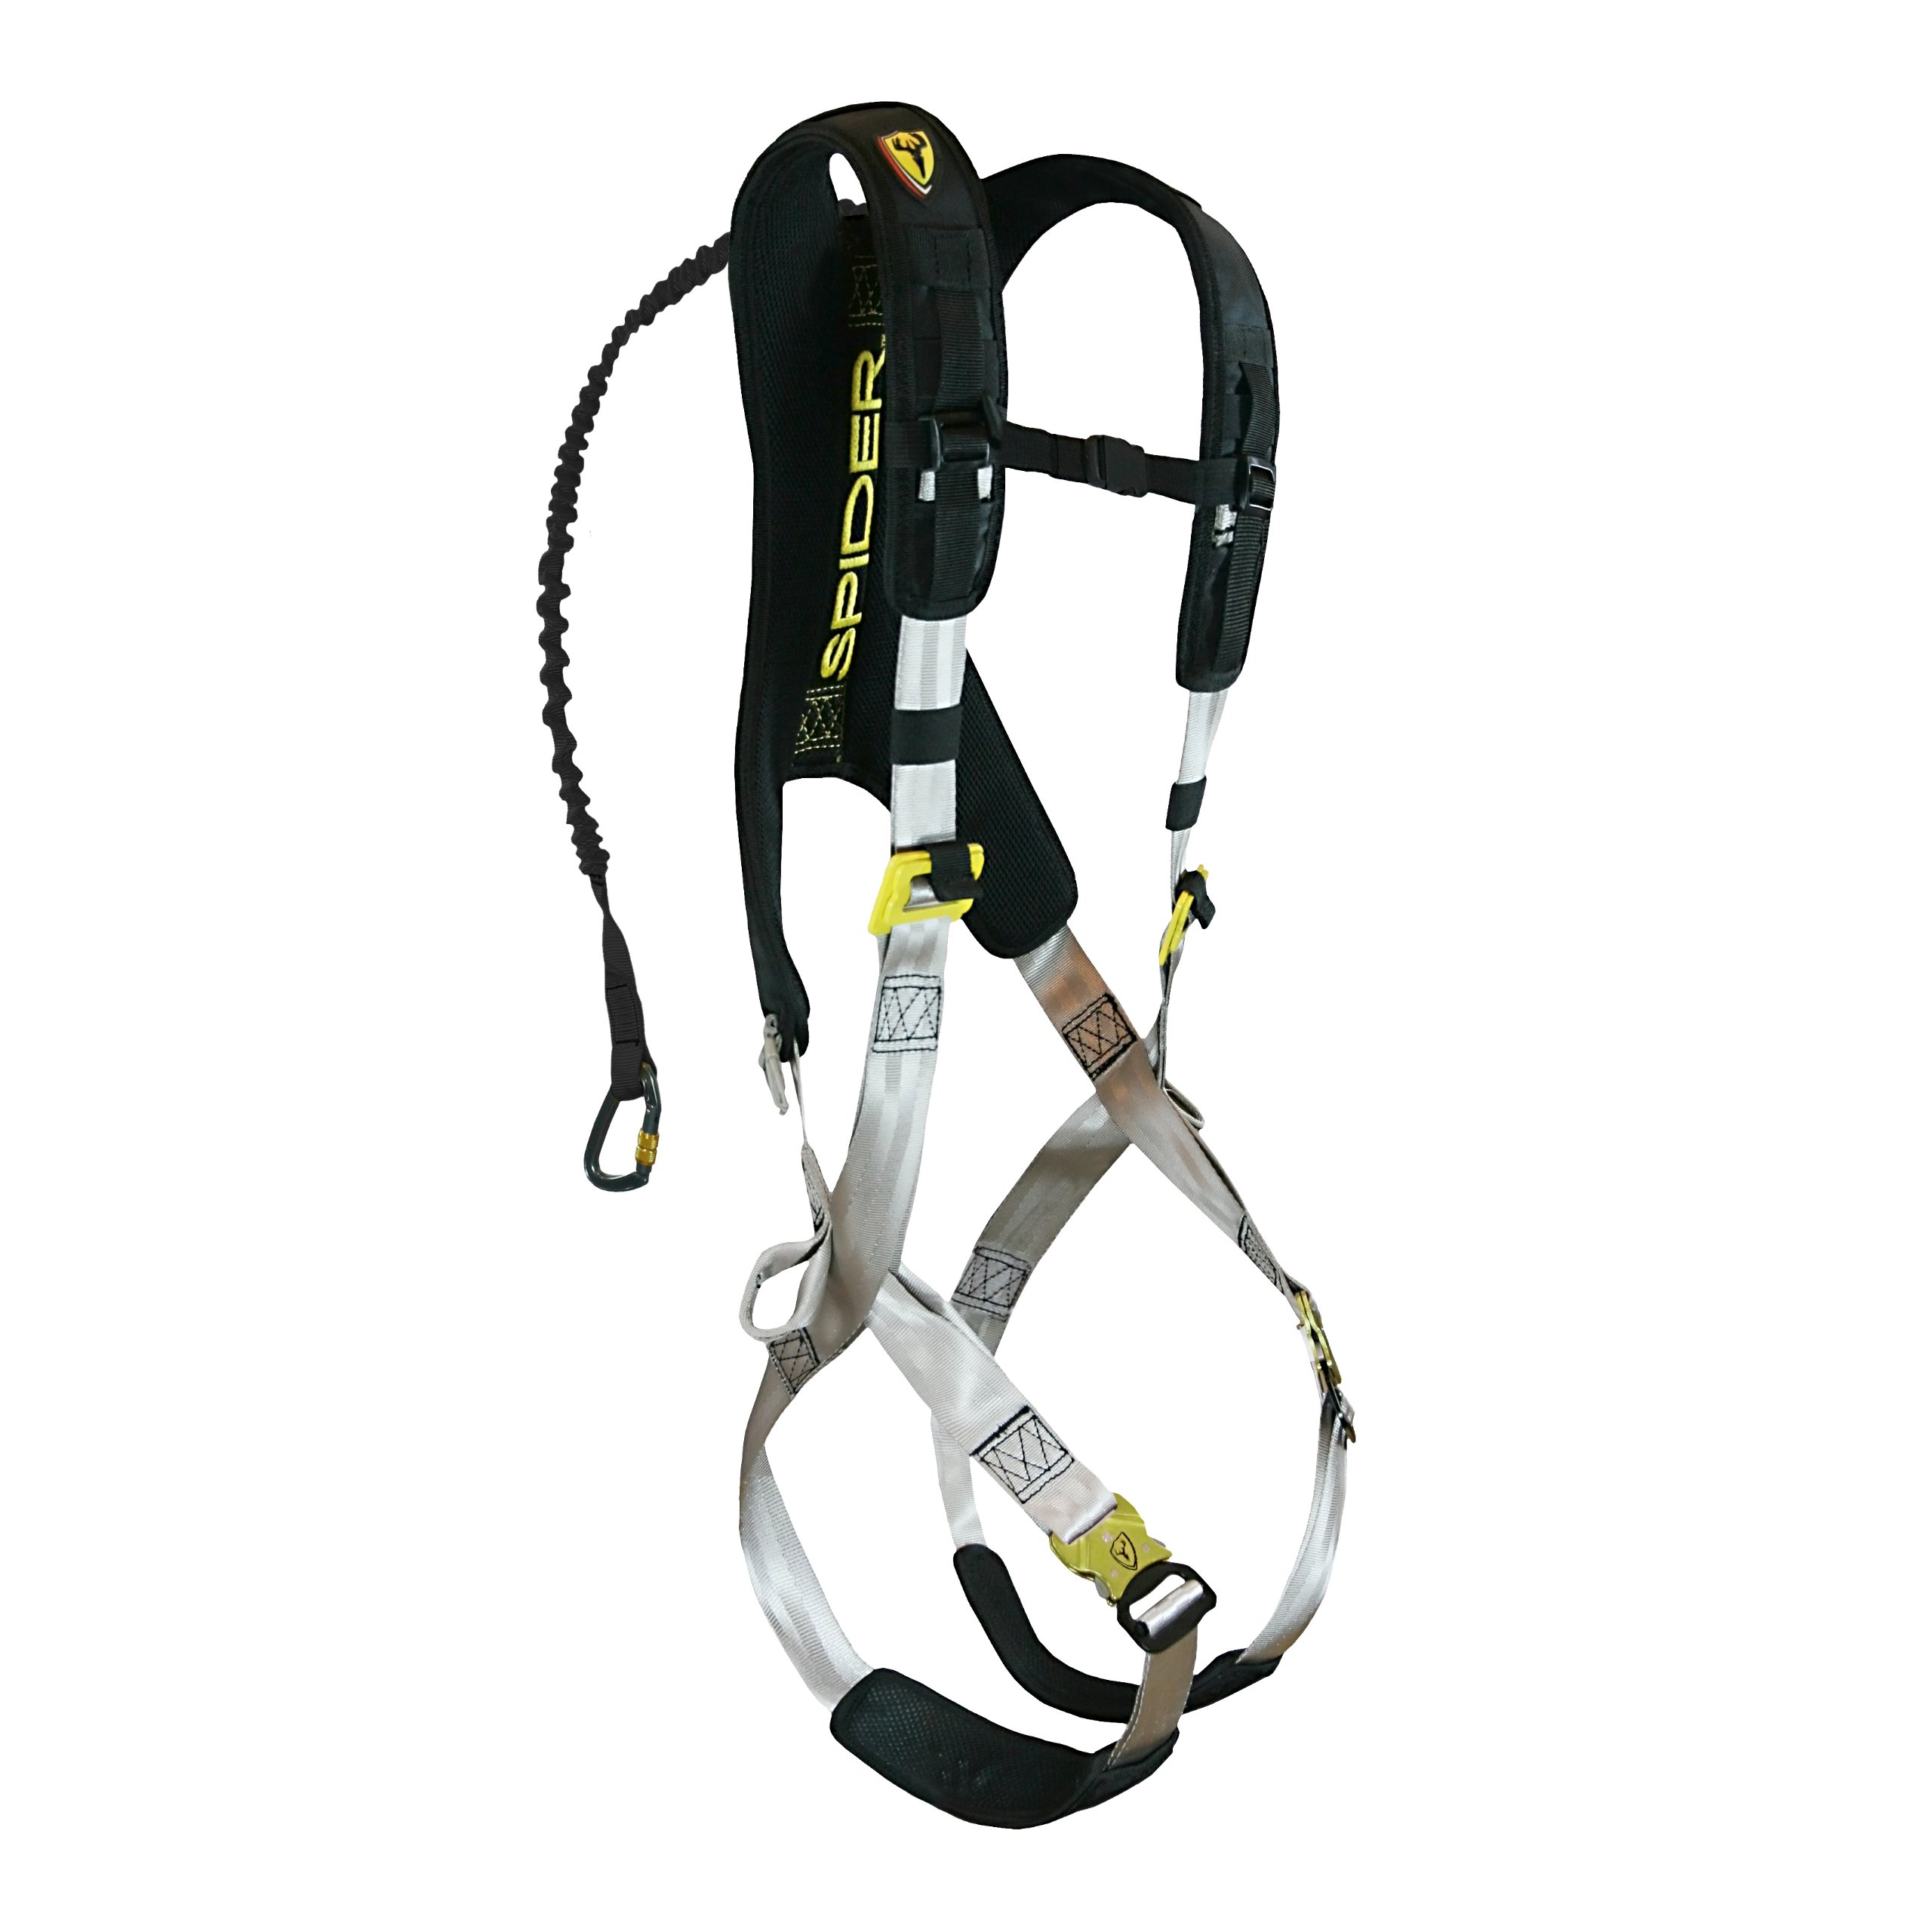 Robinson Outdoor Products Men's Speed Harness, Black/Grey, Small/Medium